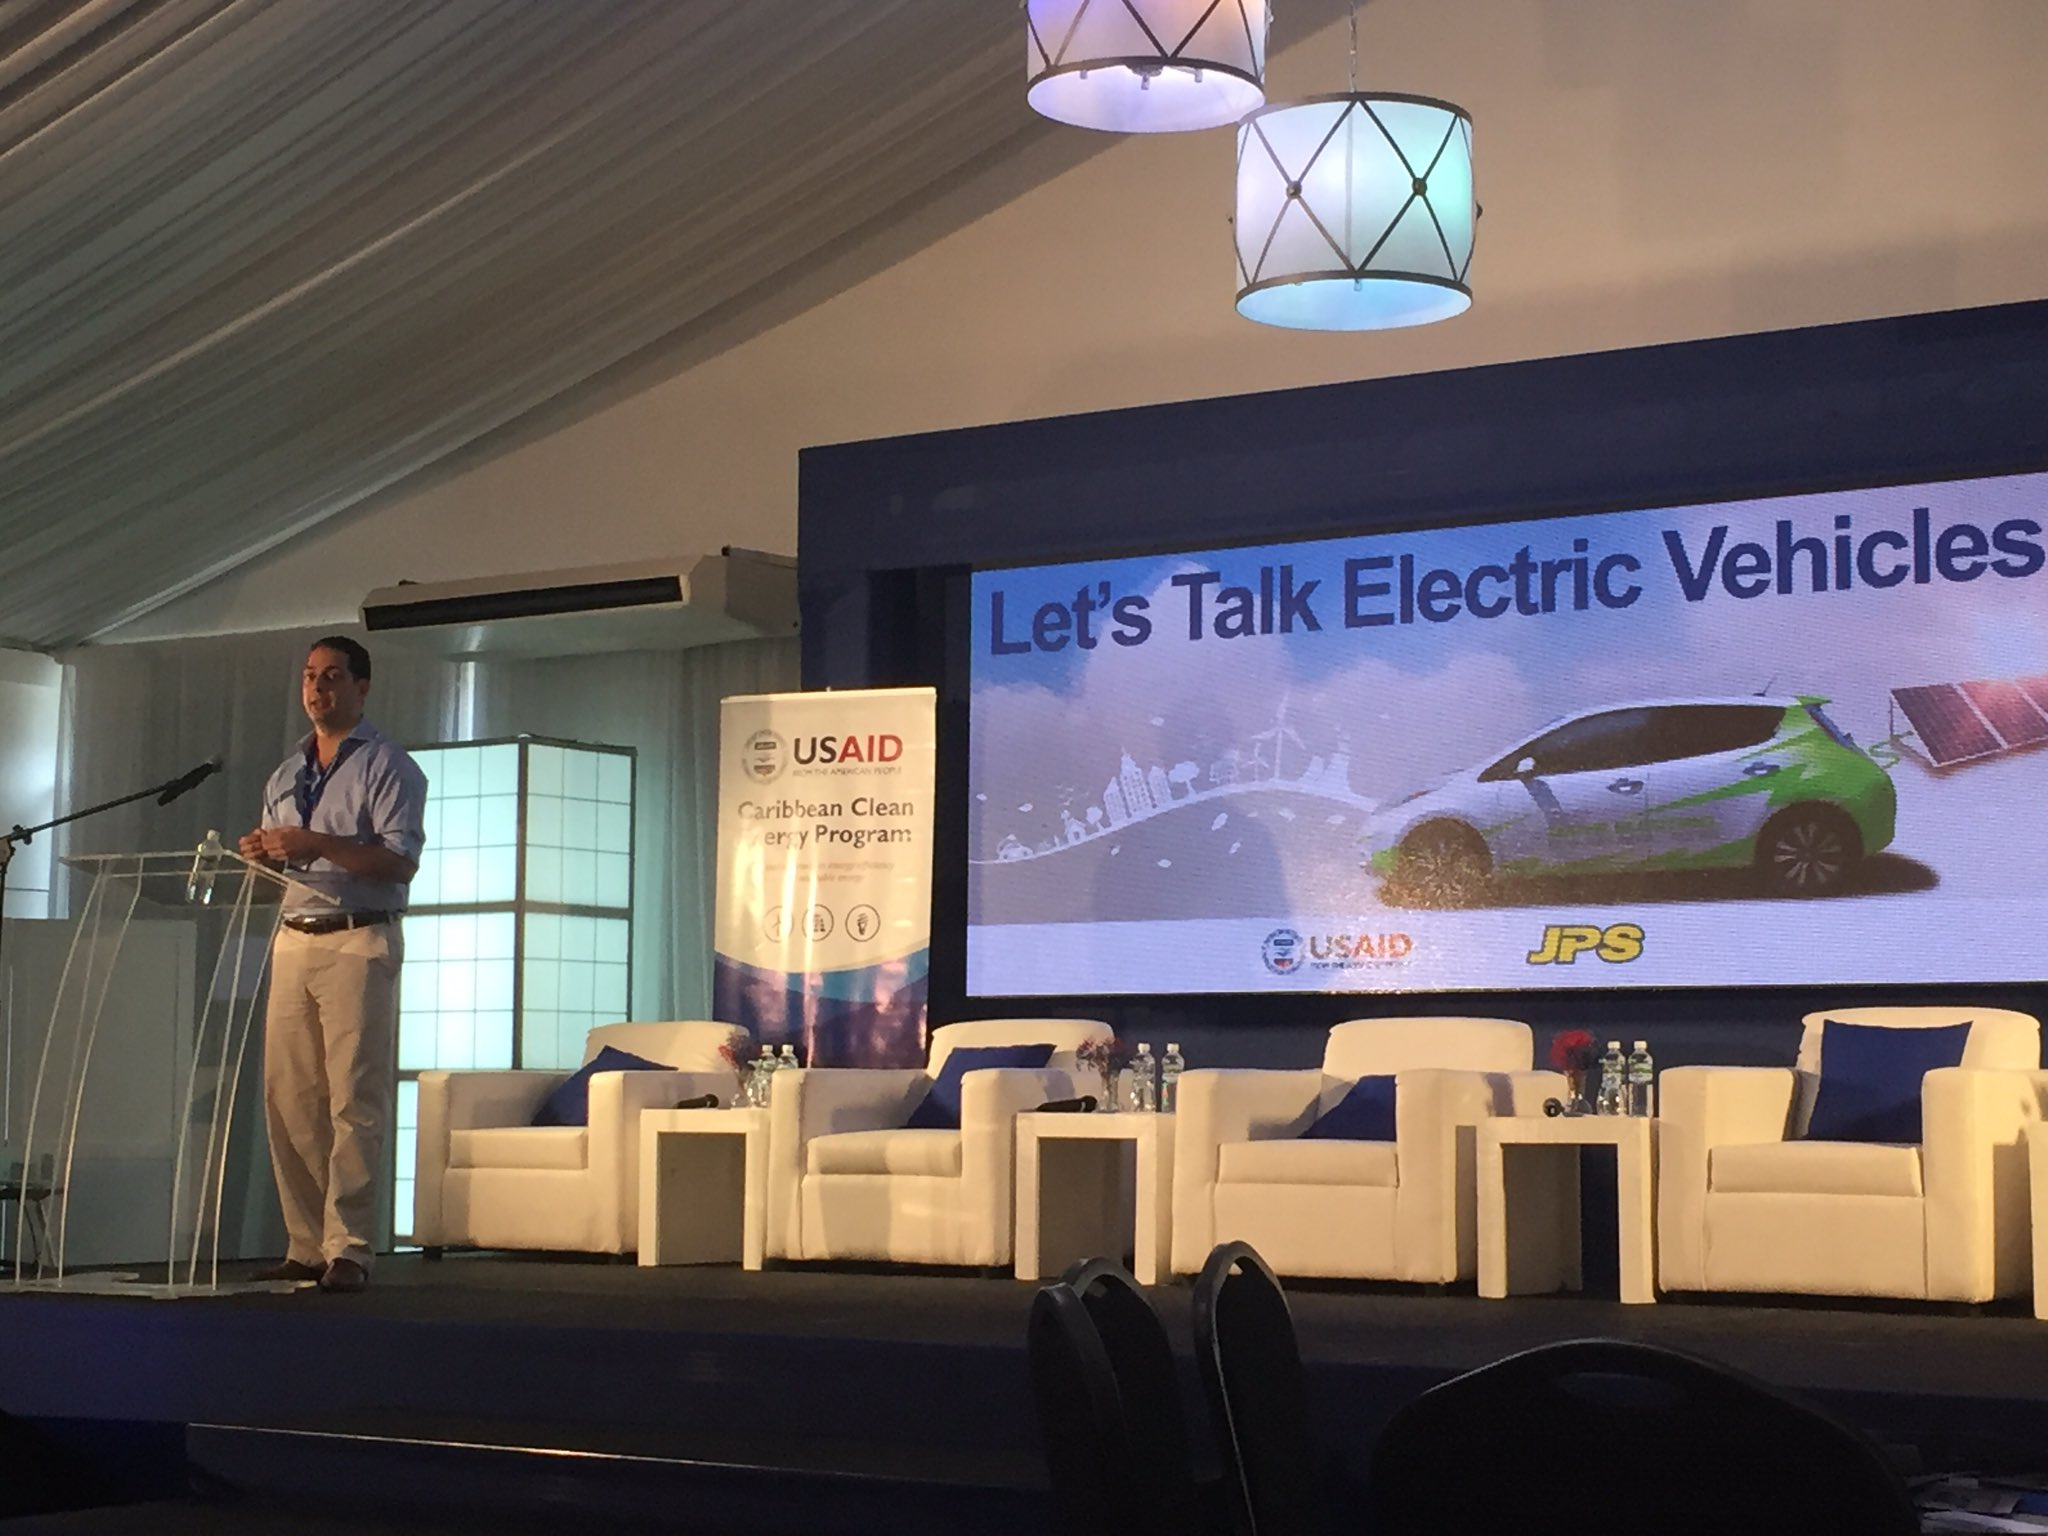 Are Electric Vehicles a Good Fit for Jamaica? - Learn more about vehicle electrification considerations for Jamaica and other island nations: Click Here.